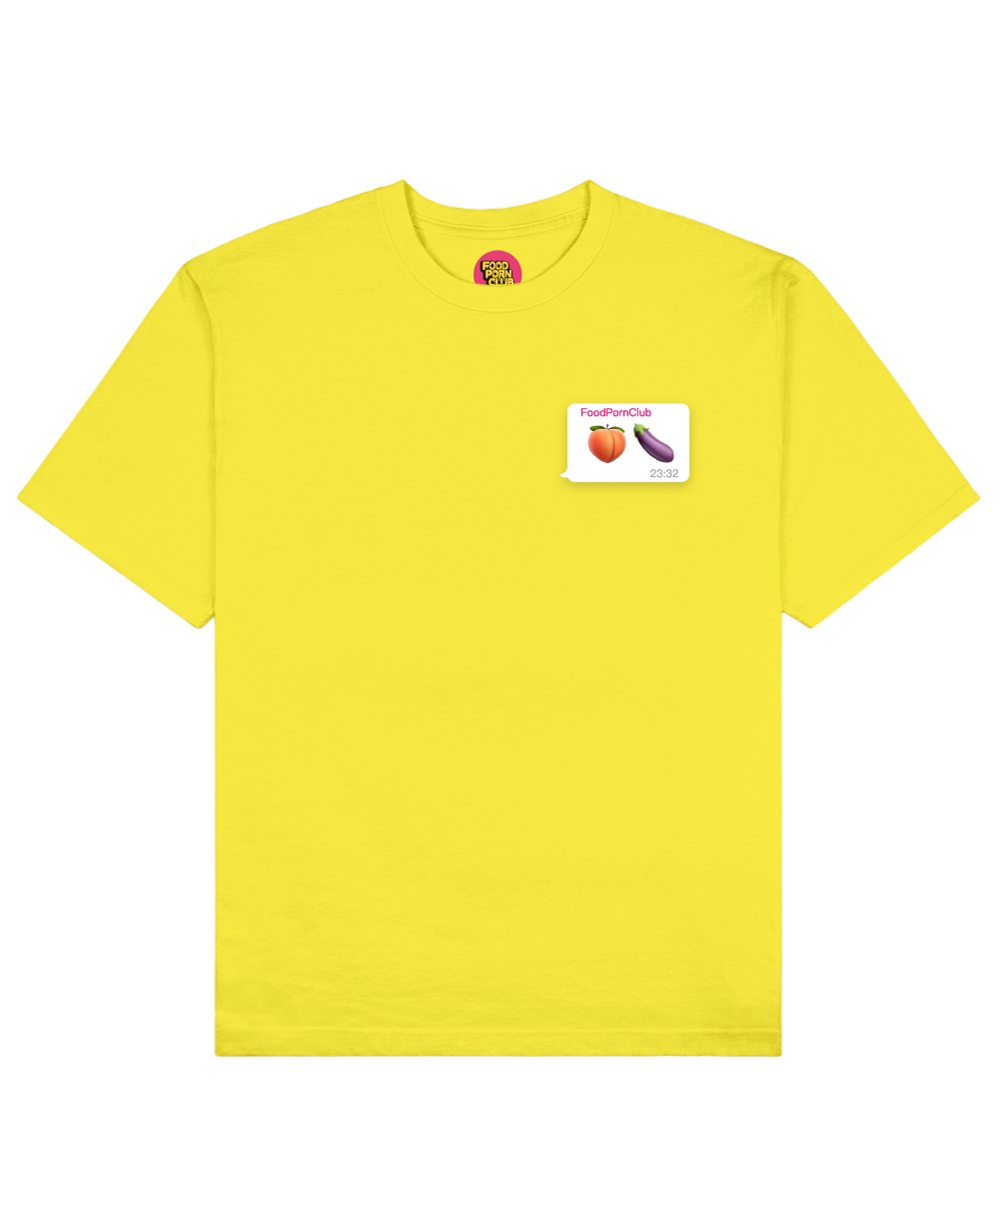 Dirty Emoji Print T-Shirt in Yellow - T-Shirts - FOOD PORN CLUB - BRANMA